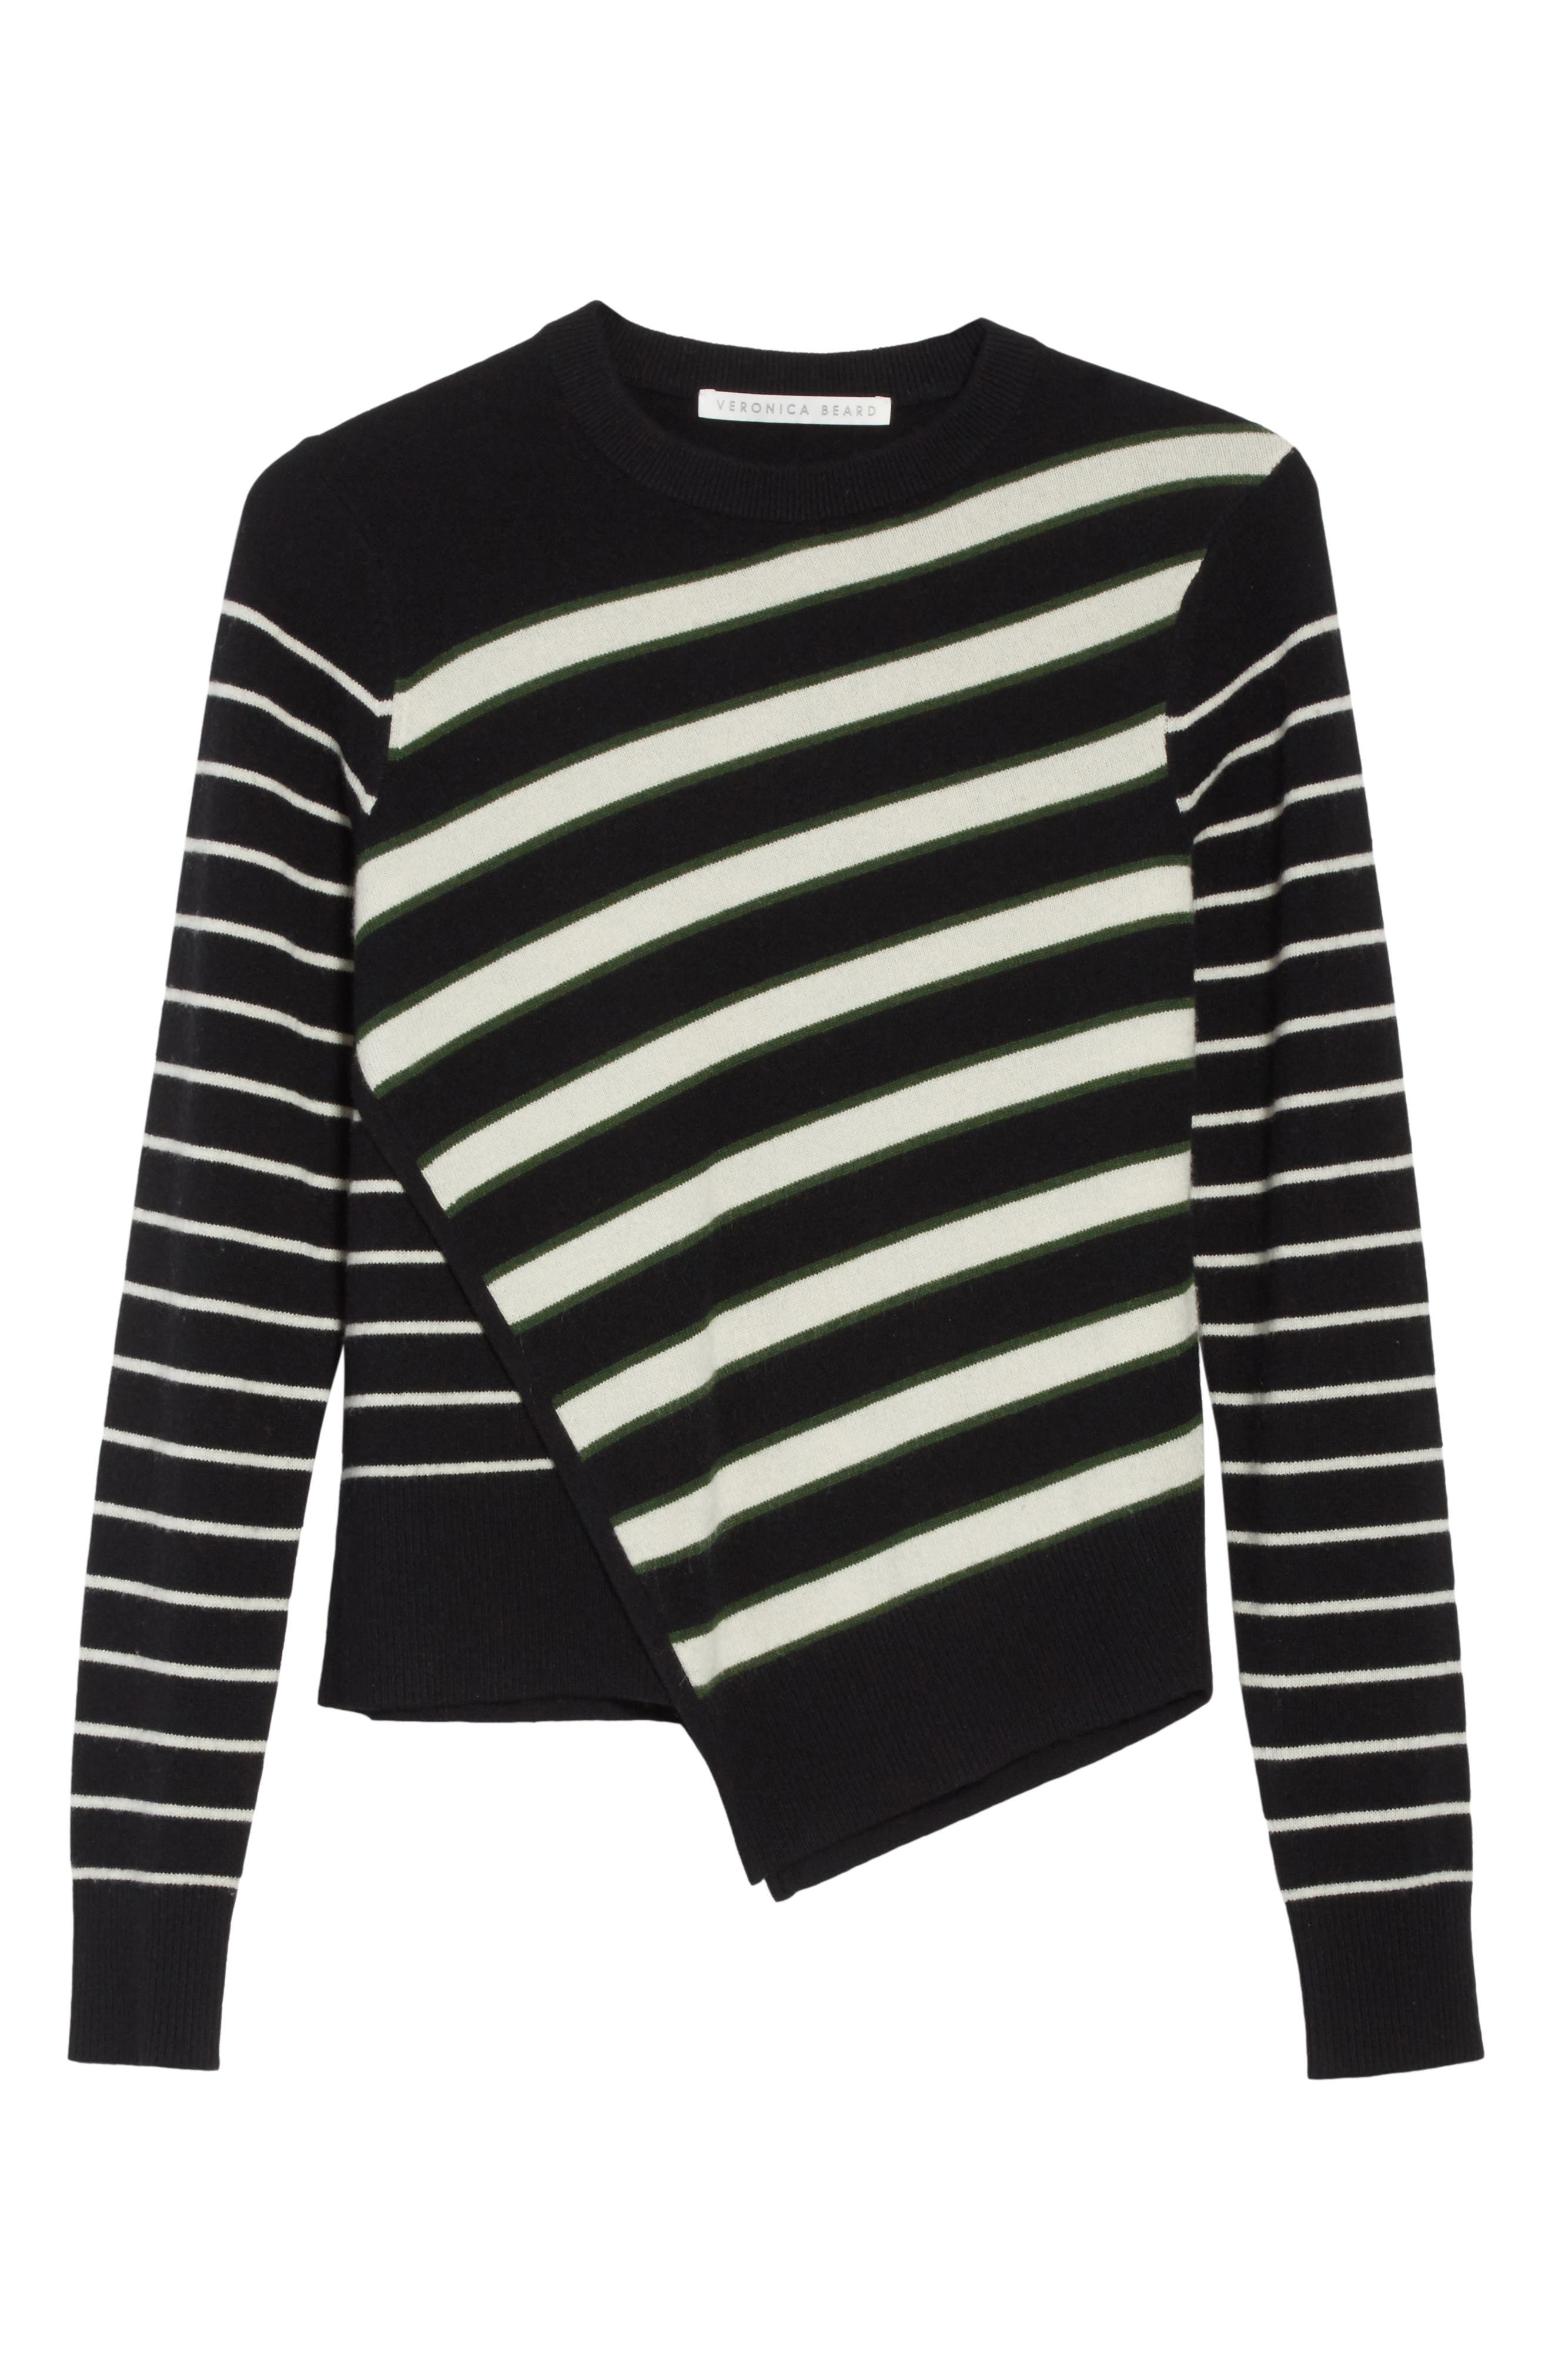 Pepper Cashmere Sweater,                             Alternate thumbnail 6, color,